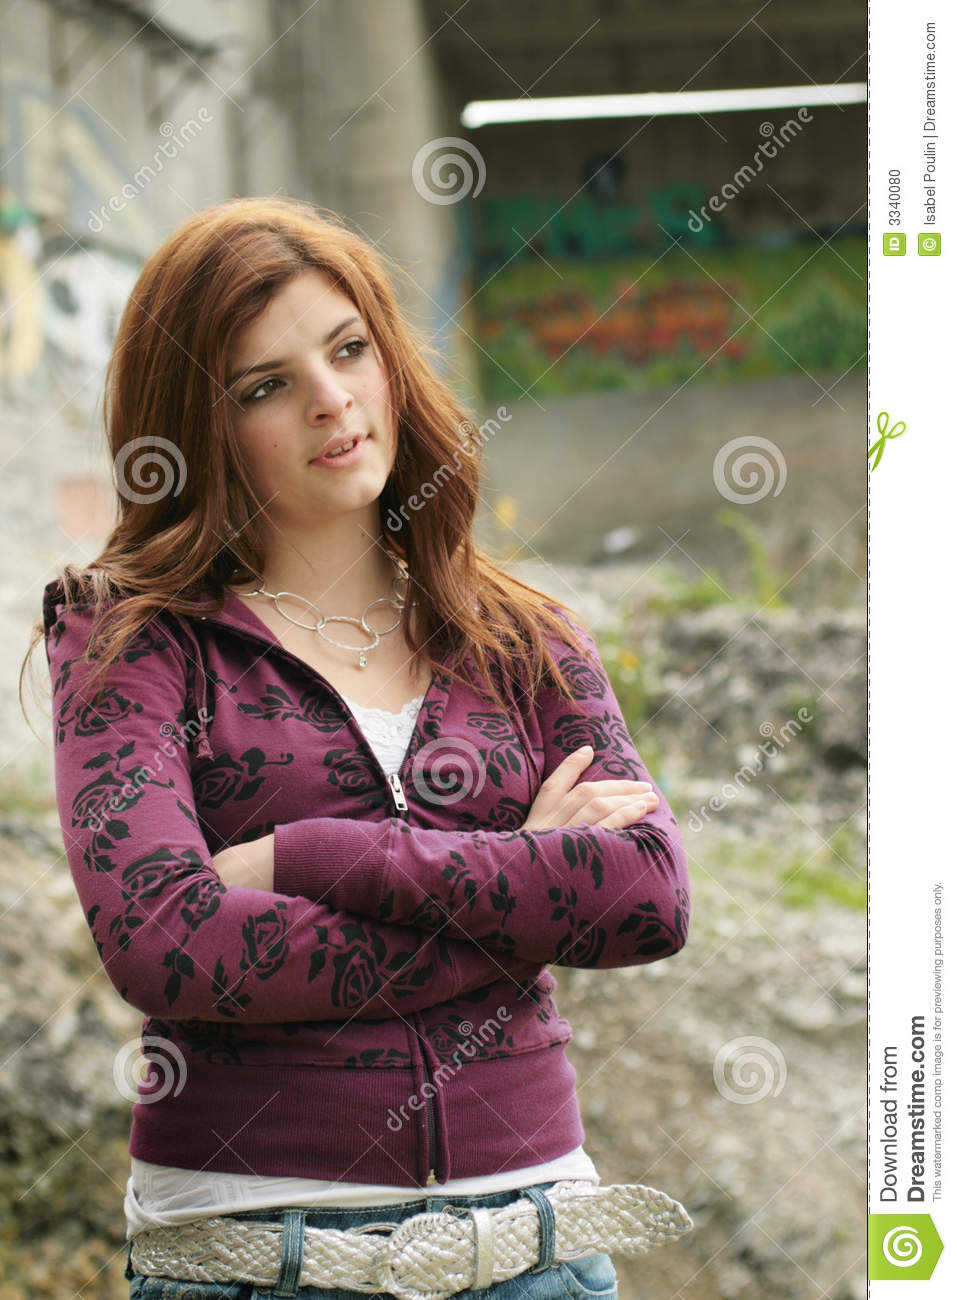 Teen Girl With Crossed Arms Stock Photo - Image: 3340080